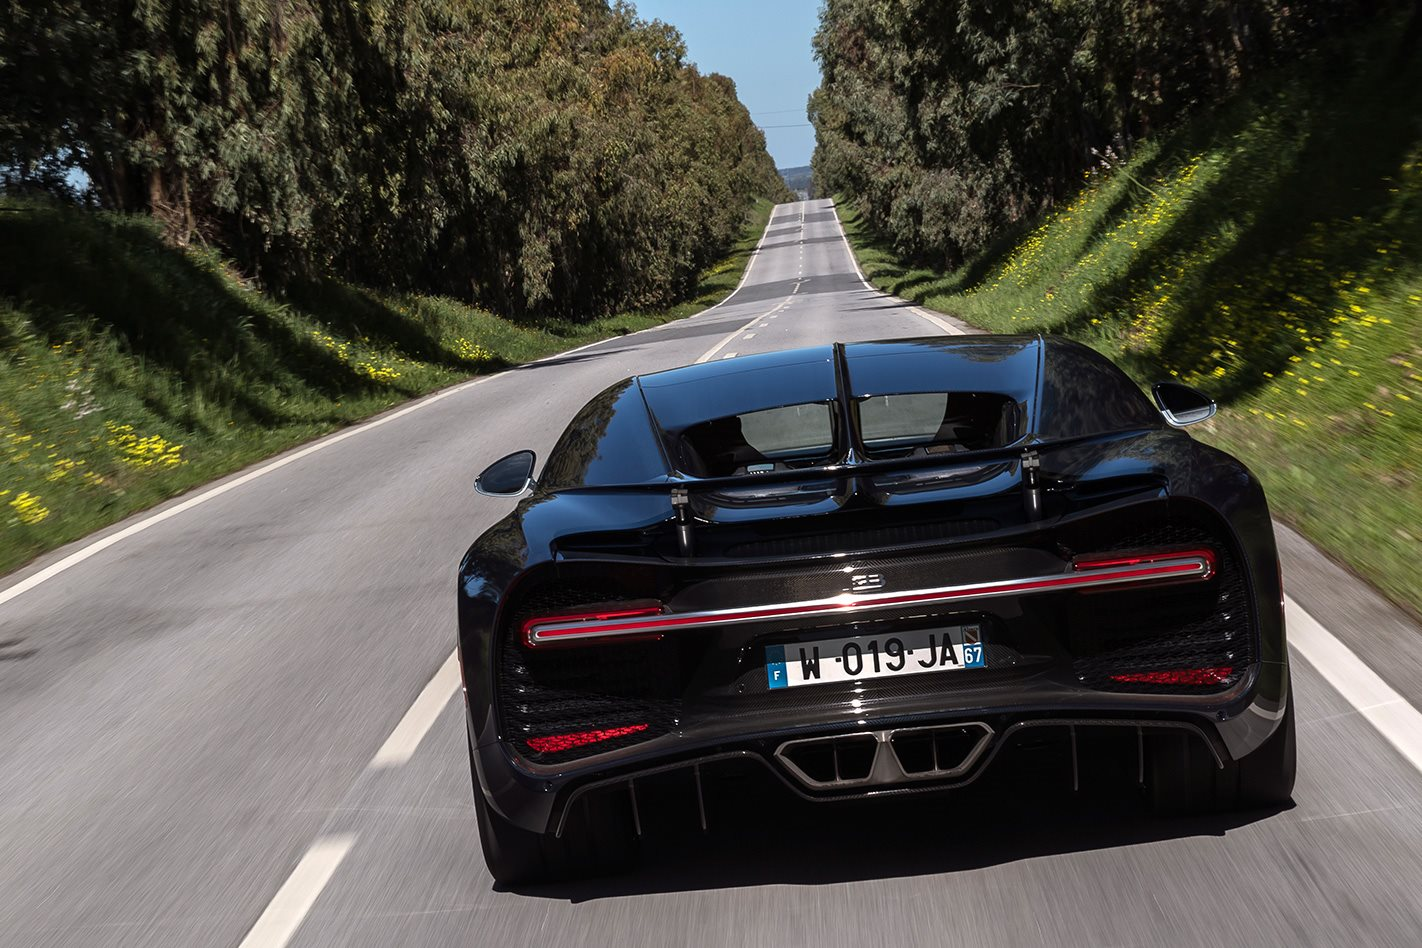 Bugatti Chiron makes 0-248-0 miles per hour dash in record 41.96 seconds